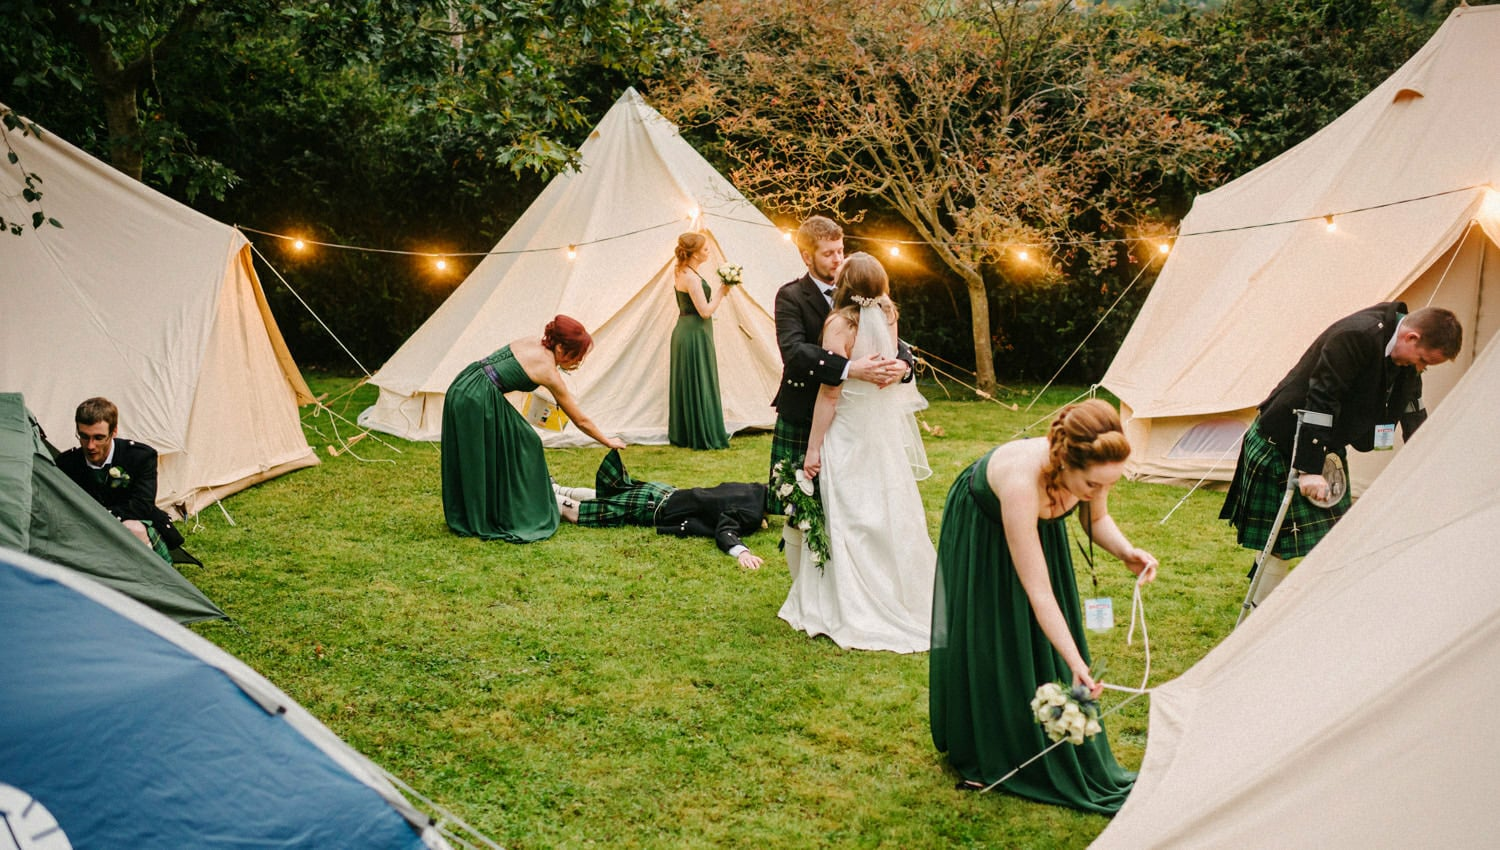 Music Festival style wedding tents